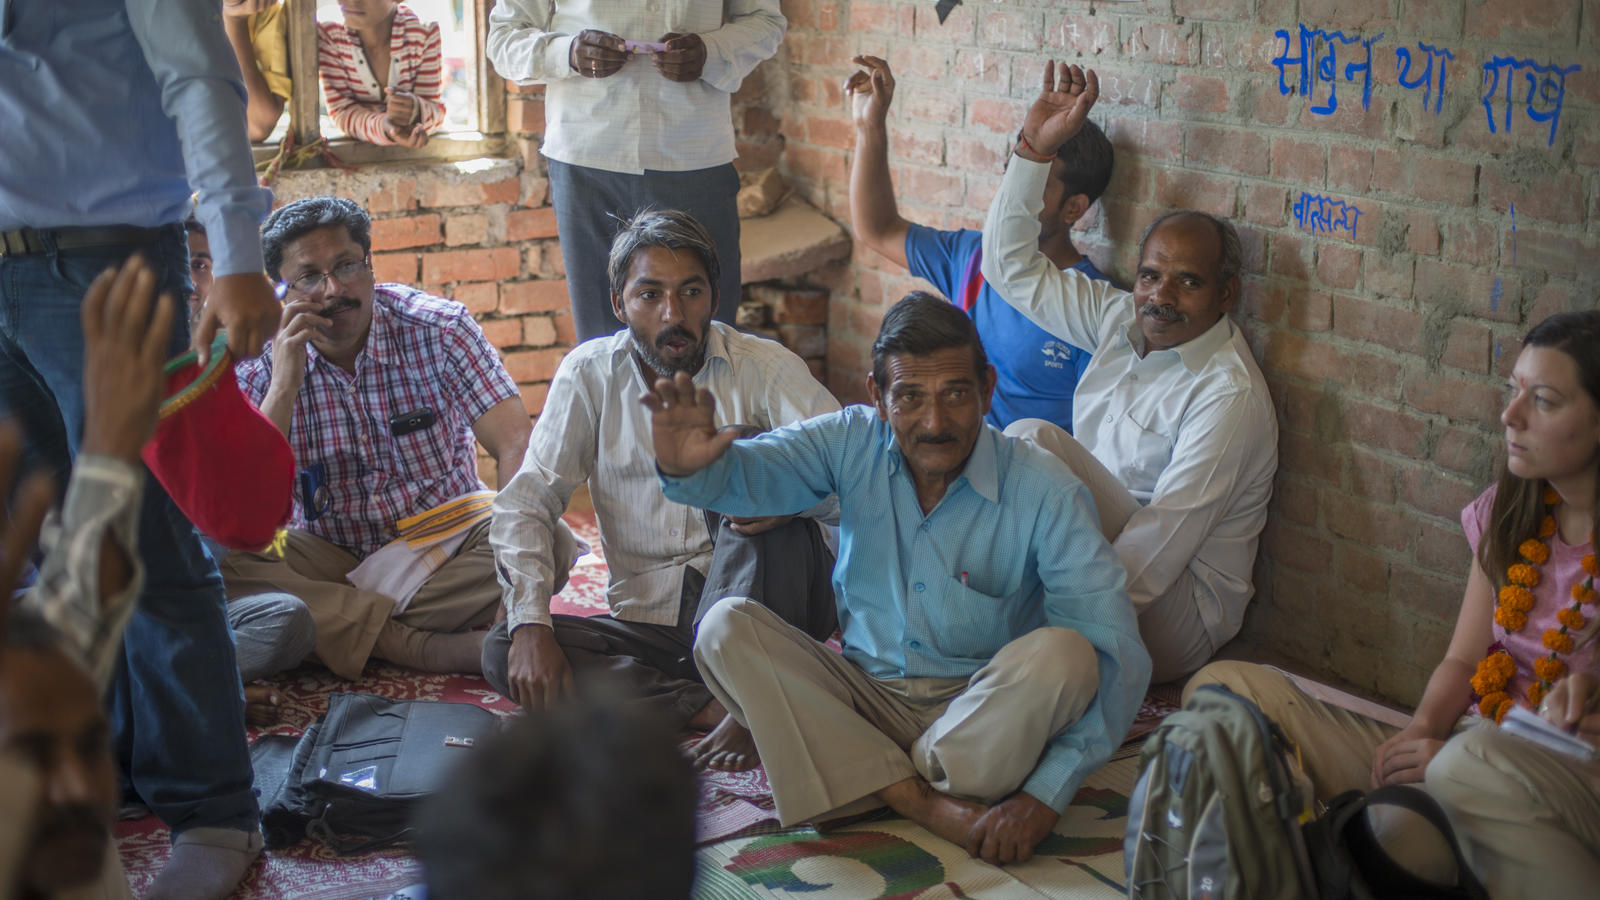 Local men play a menstrual hygiene awareness card game in Duggor, India.